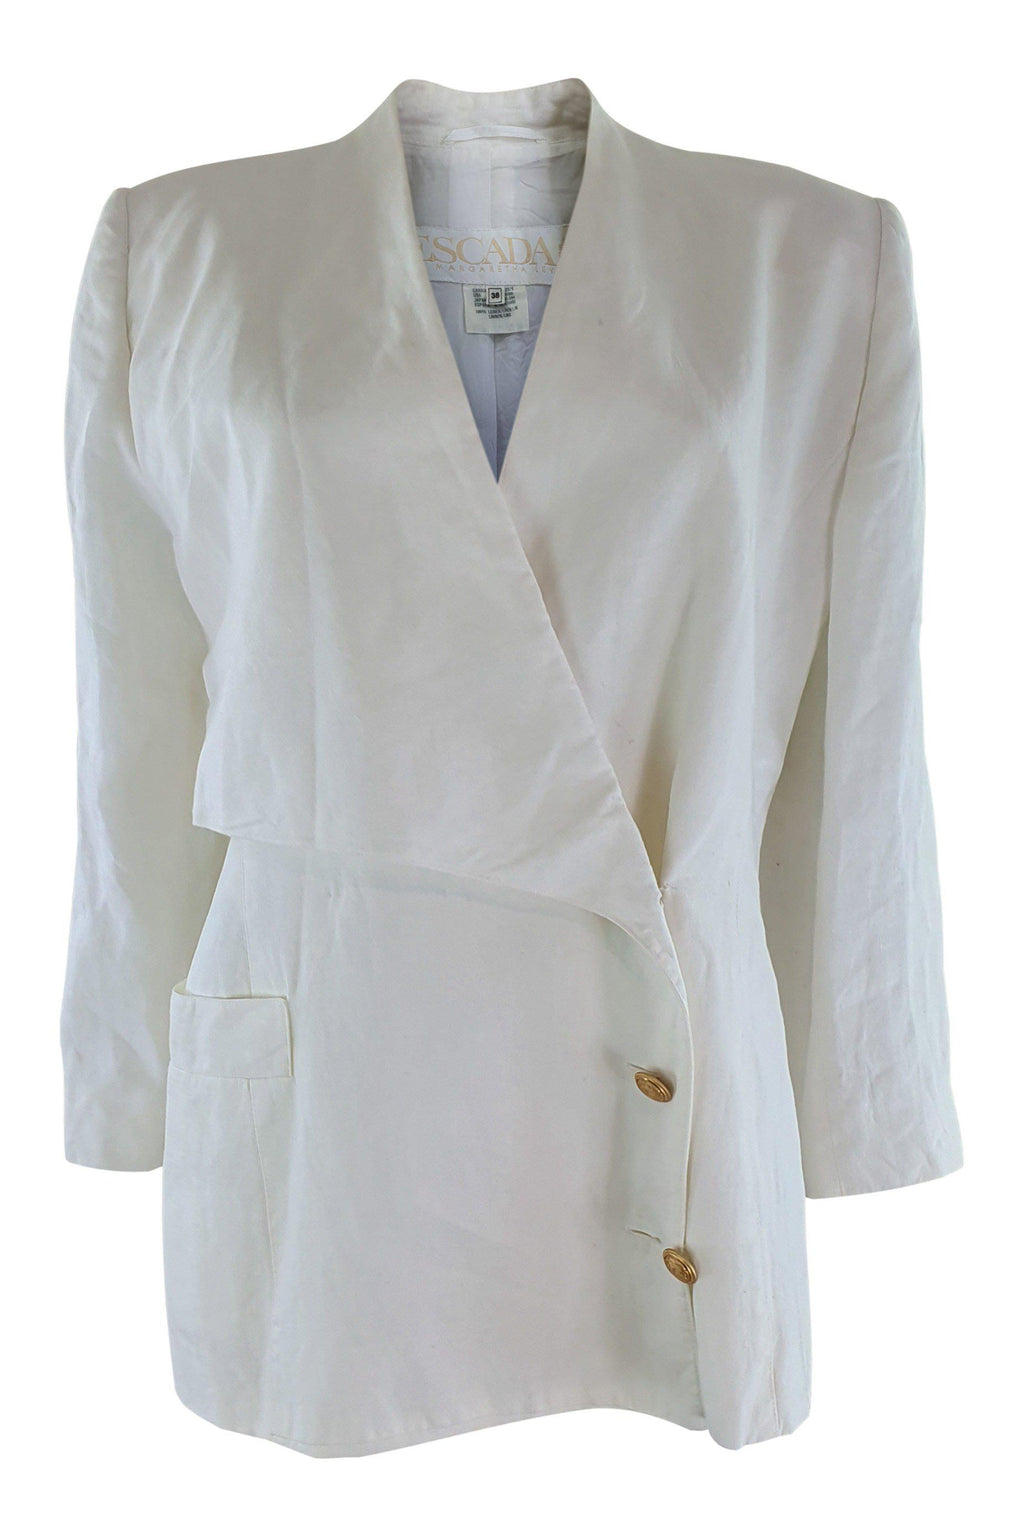 ESCADA Vintage 100% Linen Off White Double Breasted Jacket (DE 38)-The Freperie